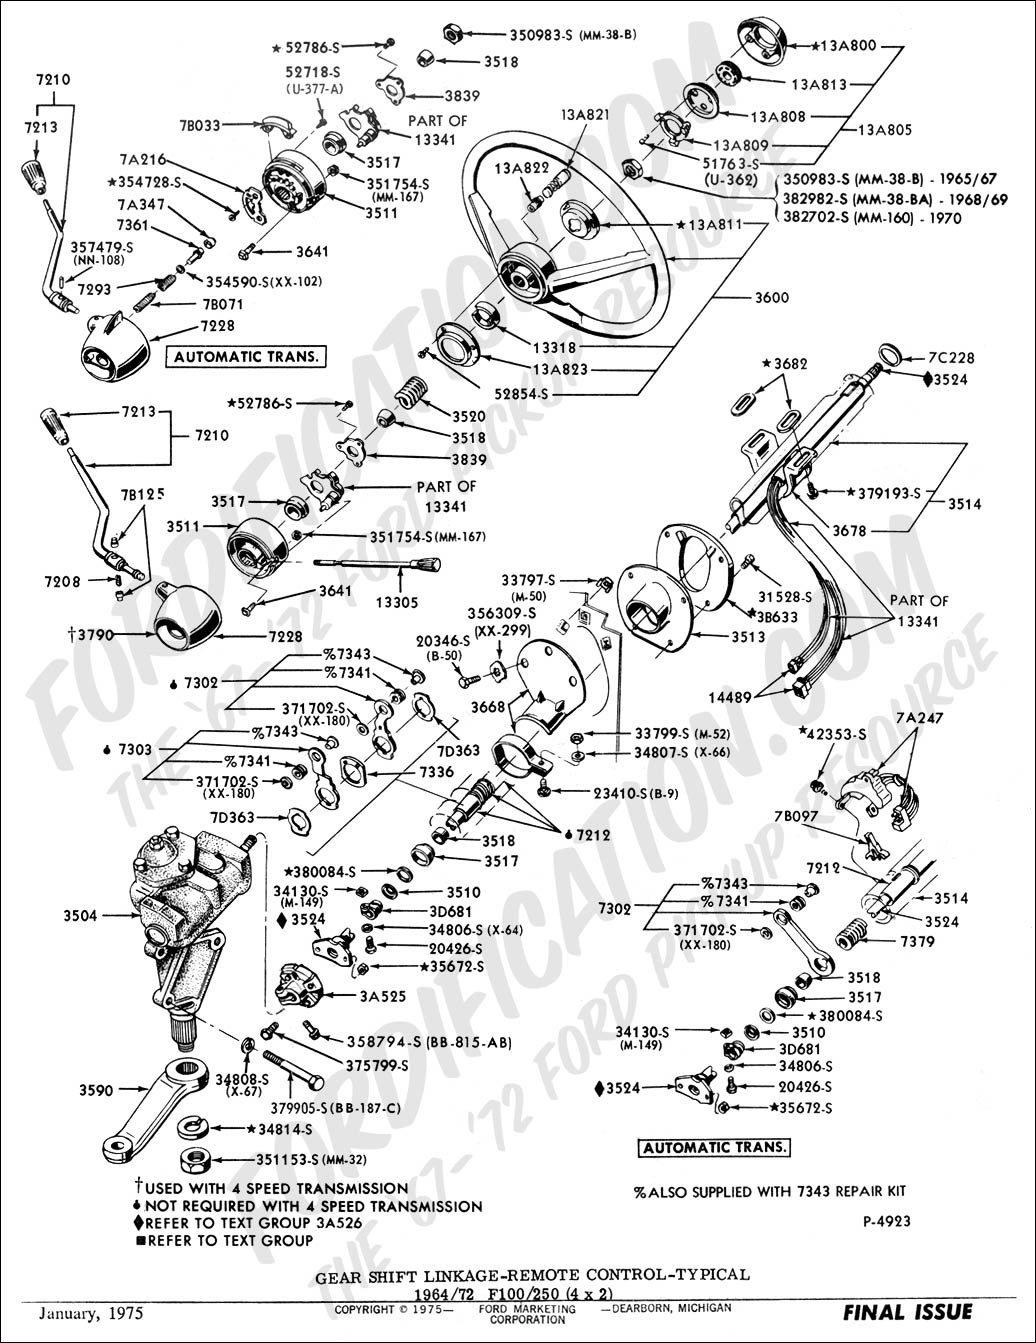 [FB_8611] C4 Transmission Linkage Diagram Schematic Wiring